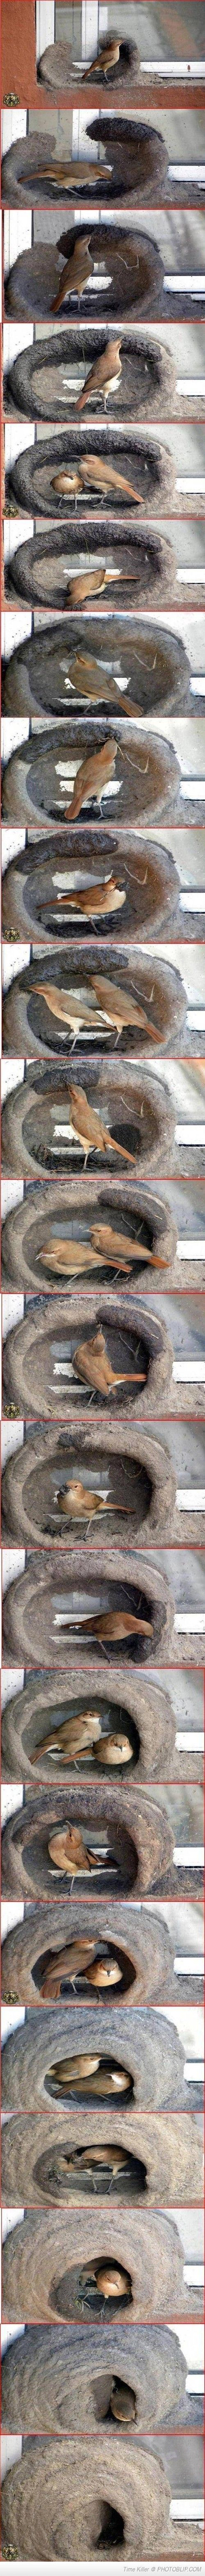 Birds Builds His Lady Friend A House Like A Boss